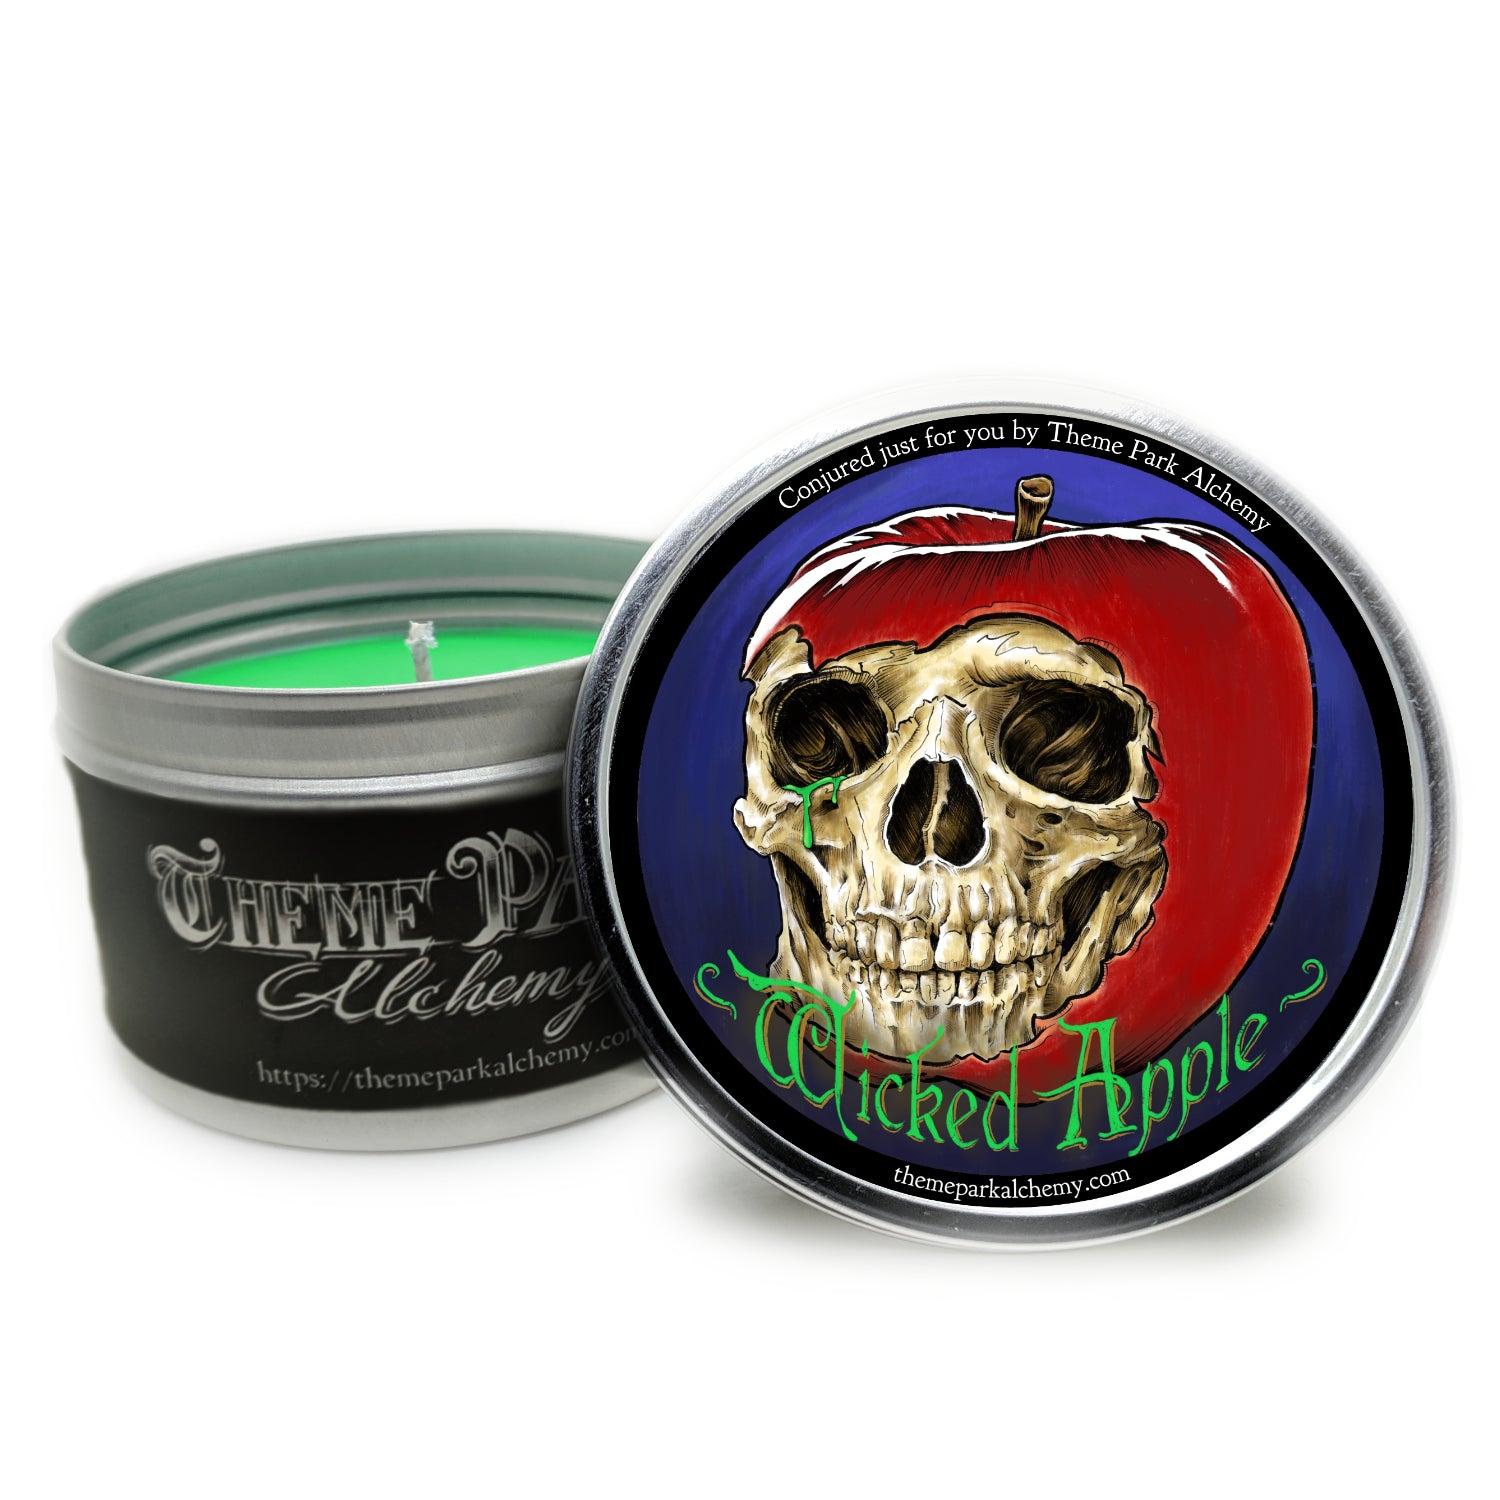 Wicked Apple - 8oz Scented Candle